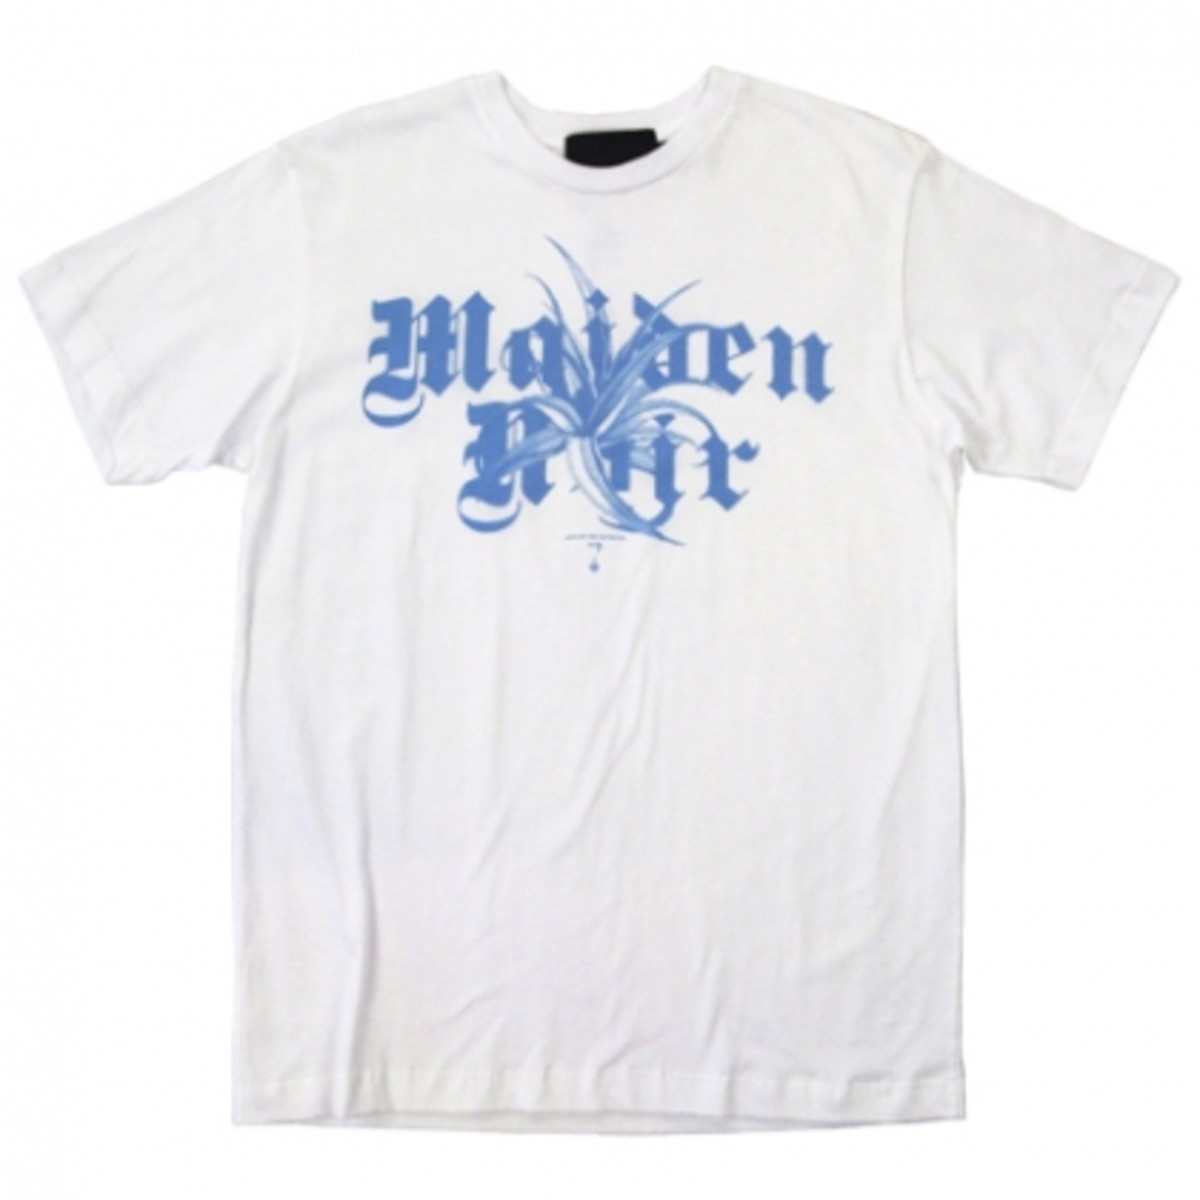 maiden-noir-t-shirt-01